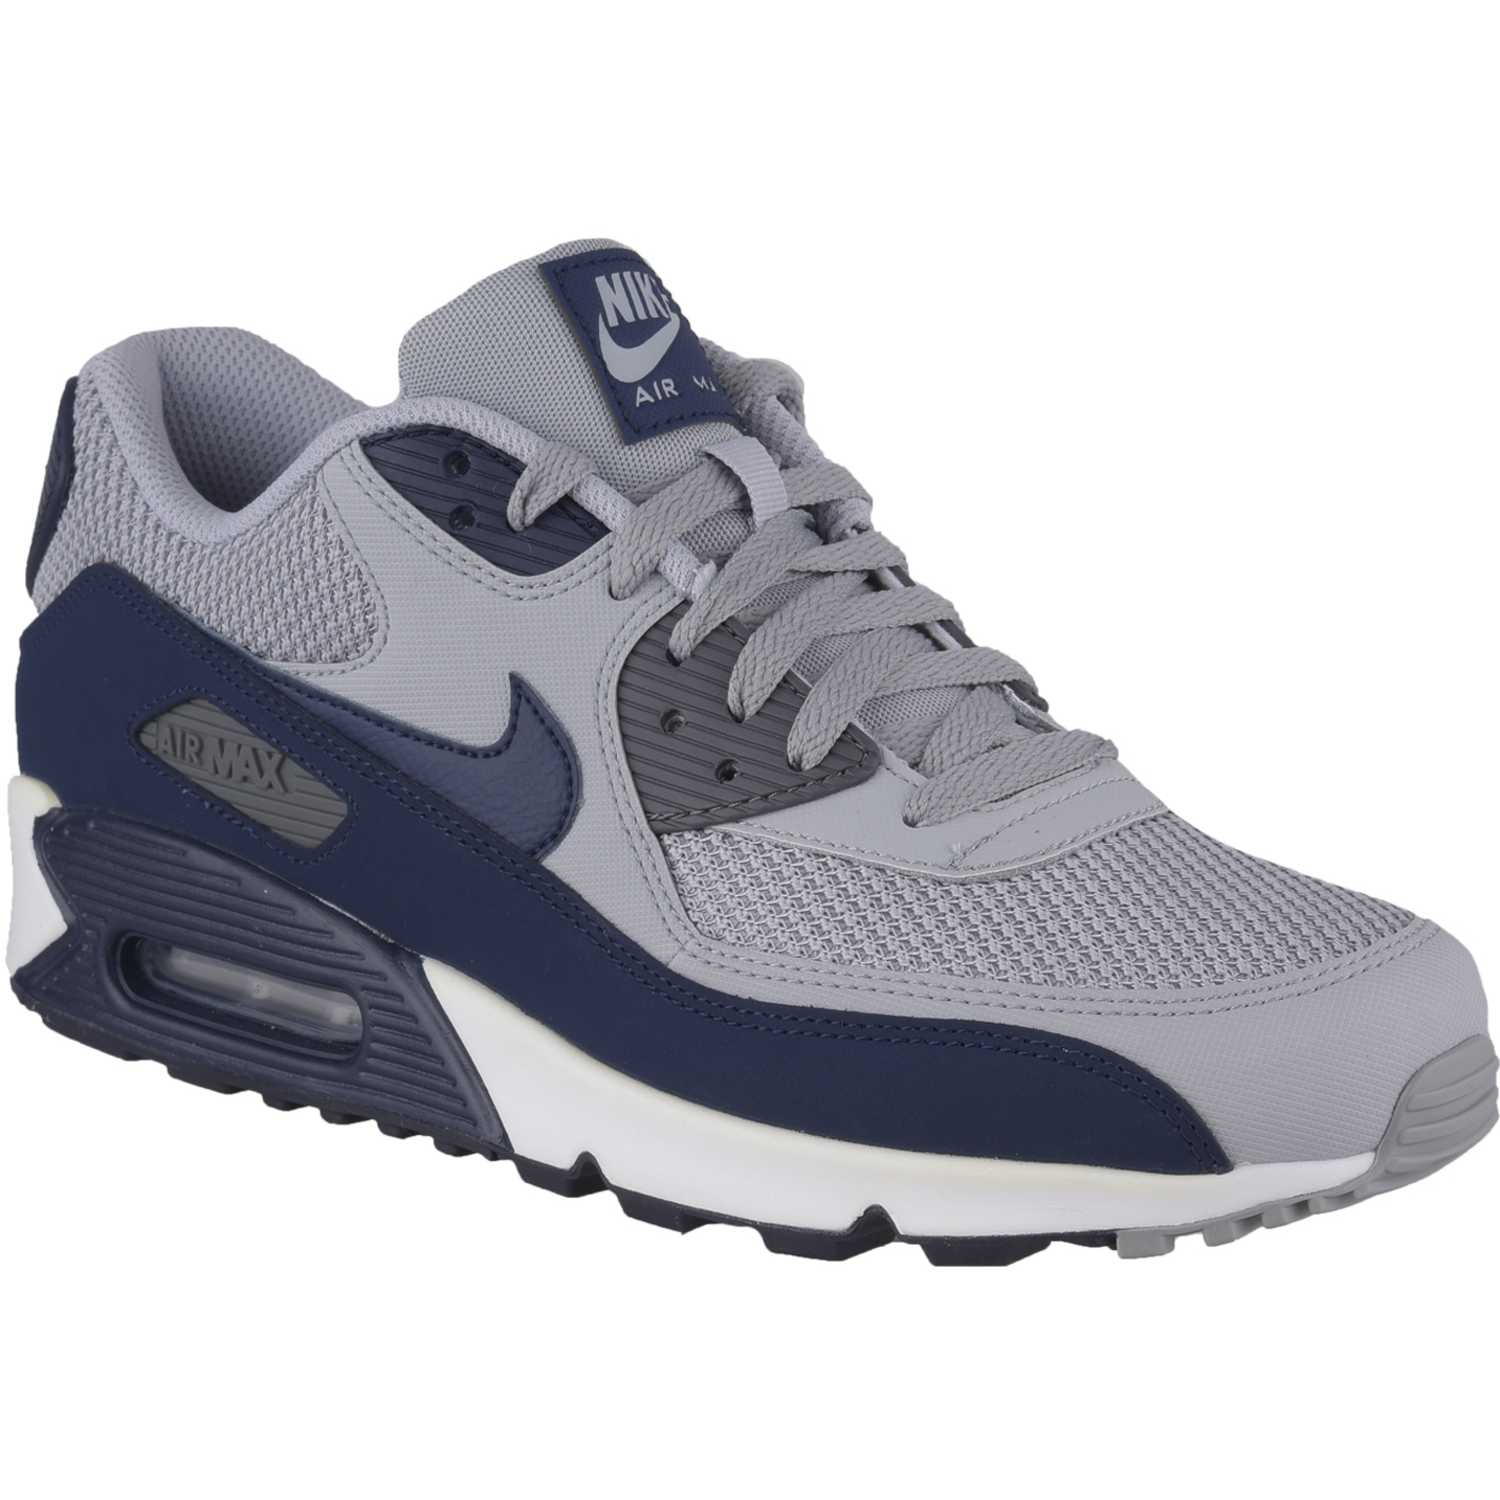 Indomable fecha fuegos artificiales  Nike air max 90 essential Gris / azul Walking | platanitos.com